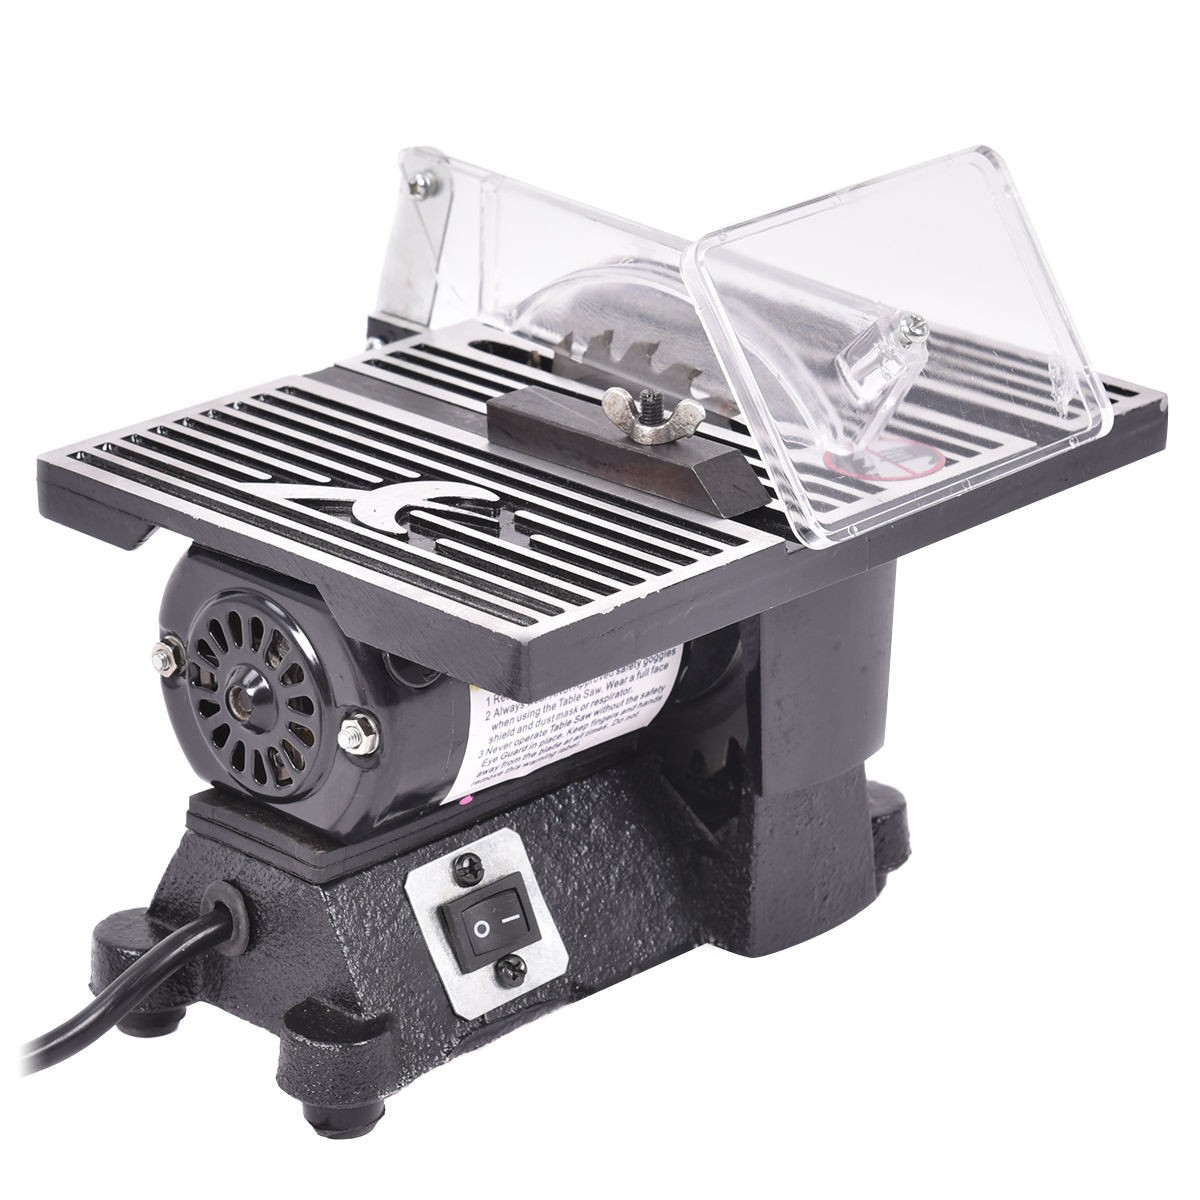 4 Mini Electric Table Saw Tablesaw 8500 Rpm Hobby And Craft Power Tools Ebay